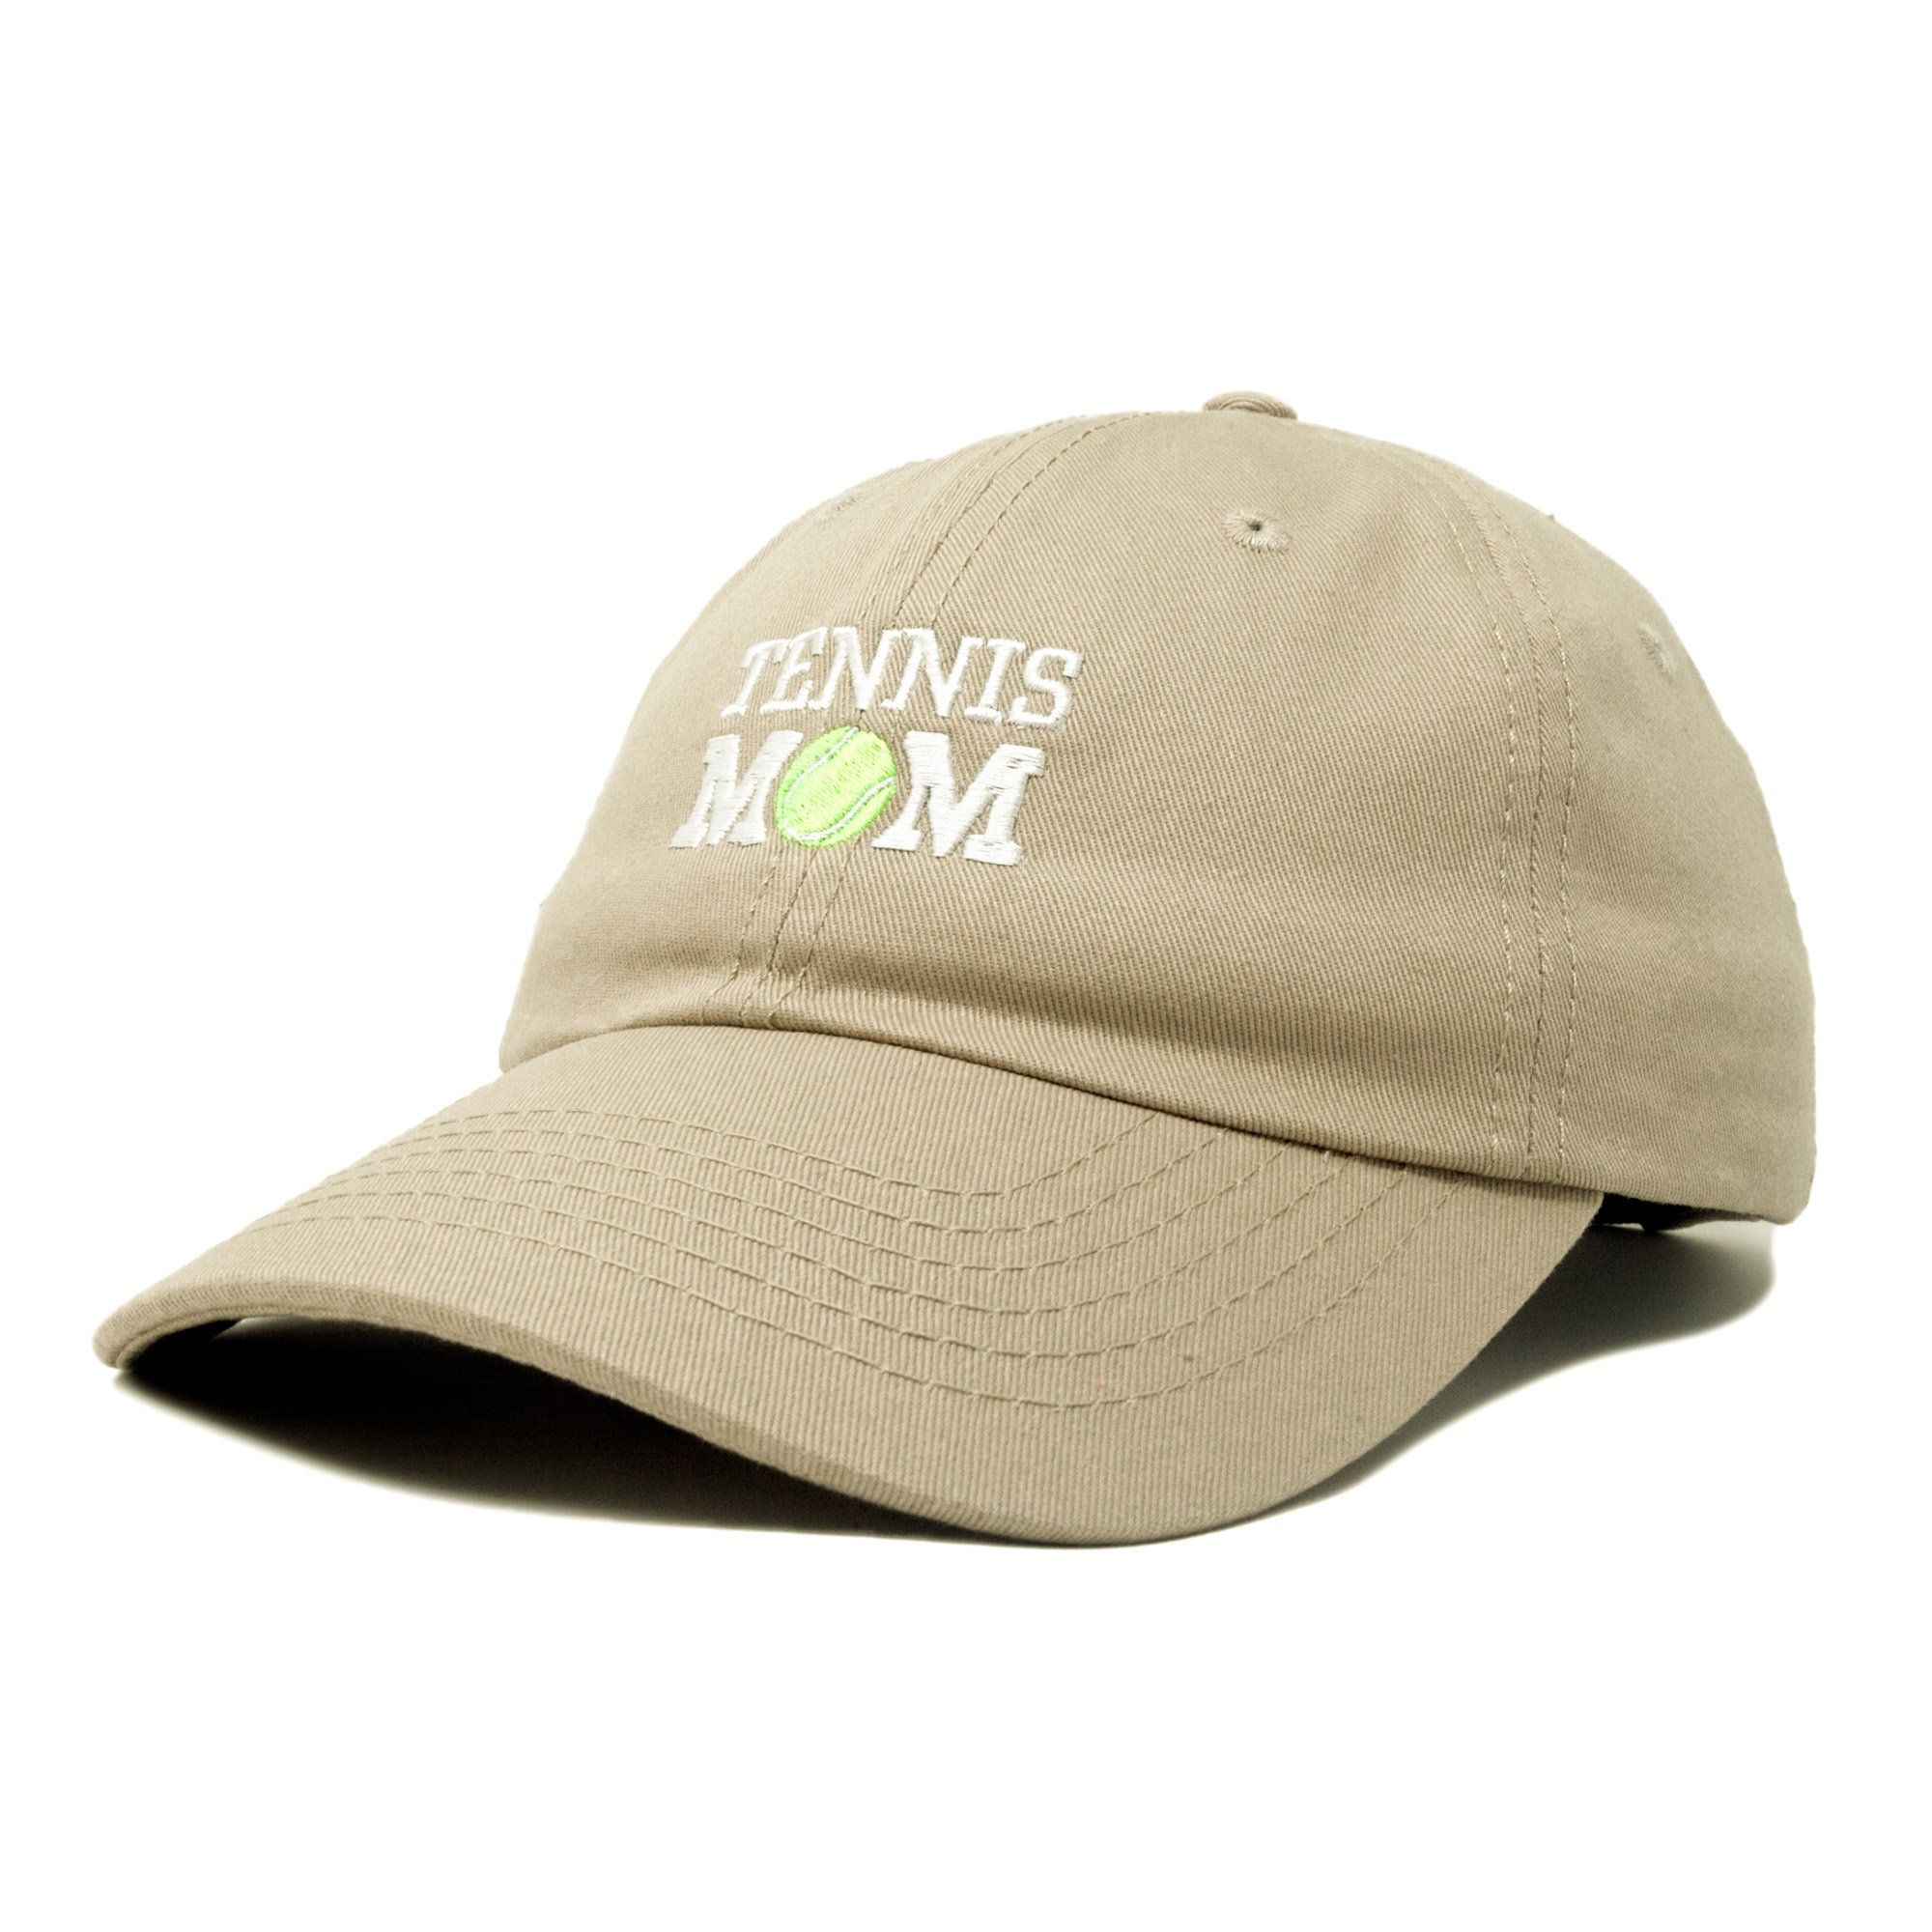 e89853701449f9 Premium Cap Tennis Mom Hat for Women Hats and Caps | Products | Hats ...